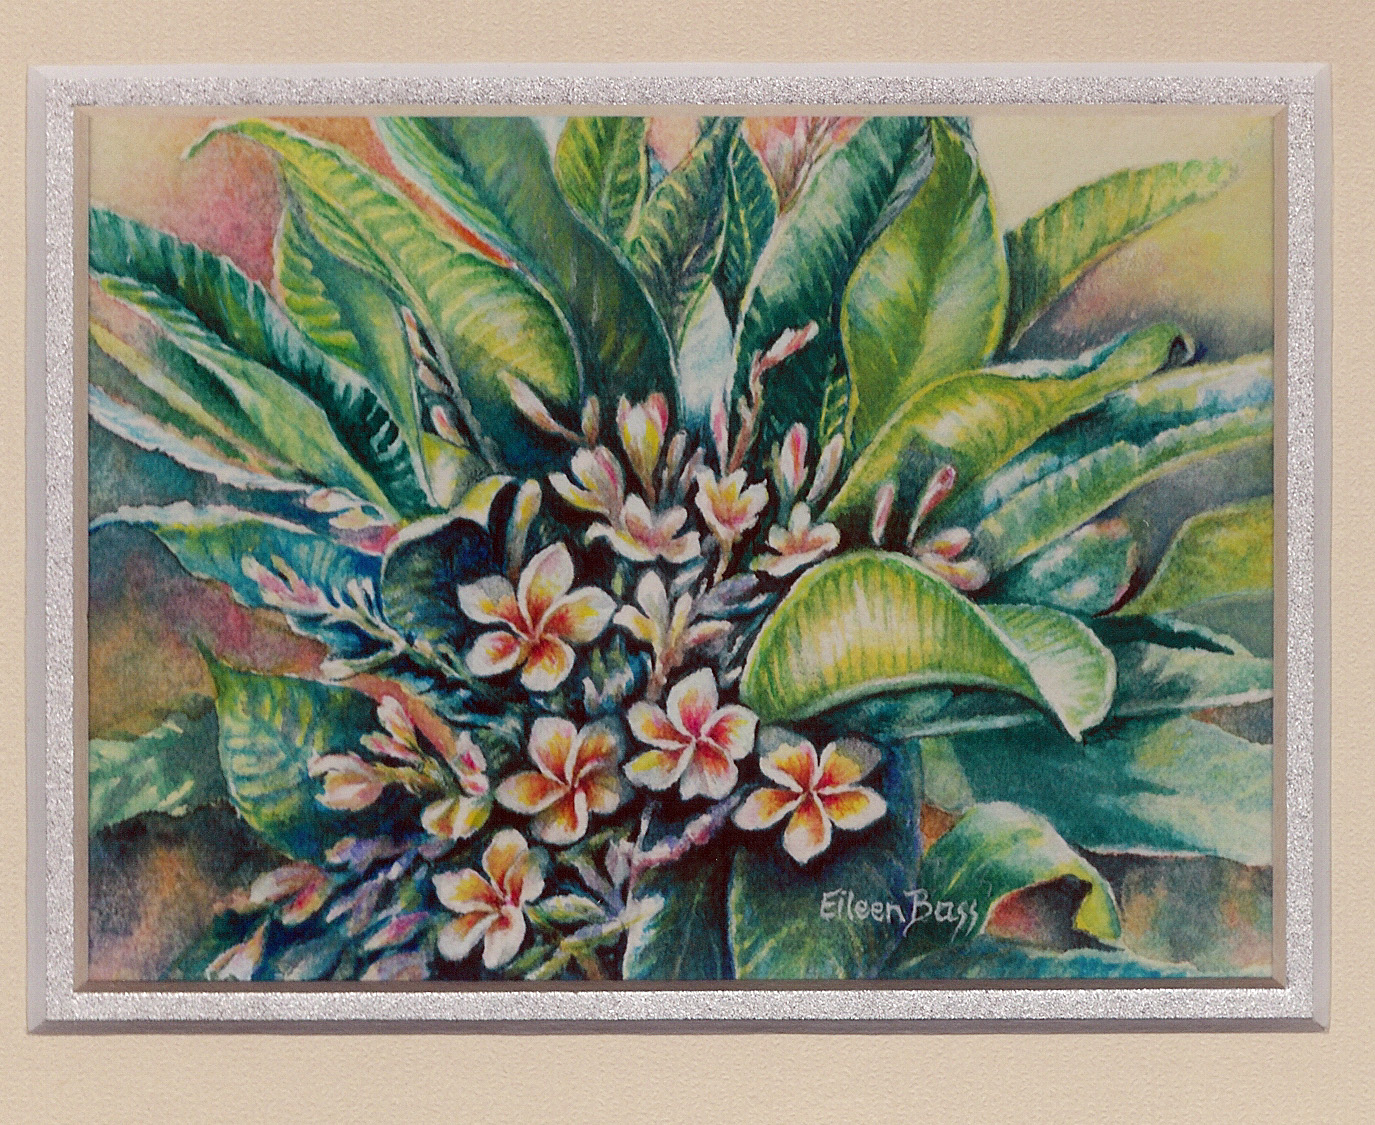 16 Frangipani by Eileen Bass - Watercolour